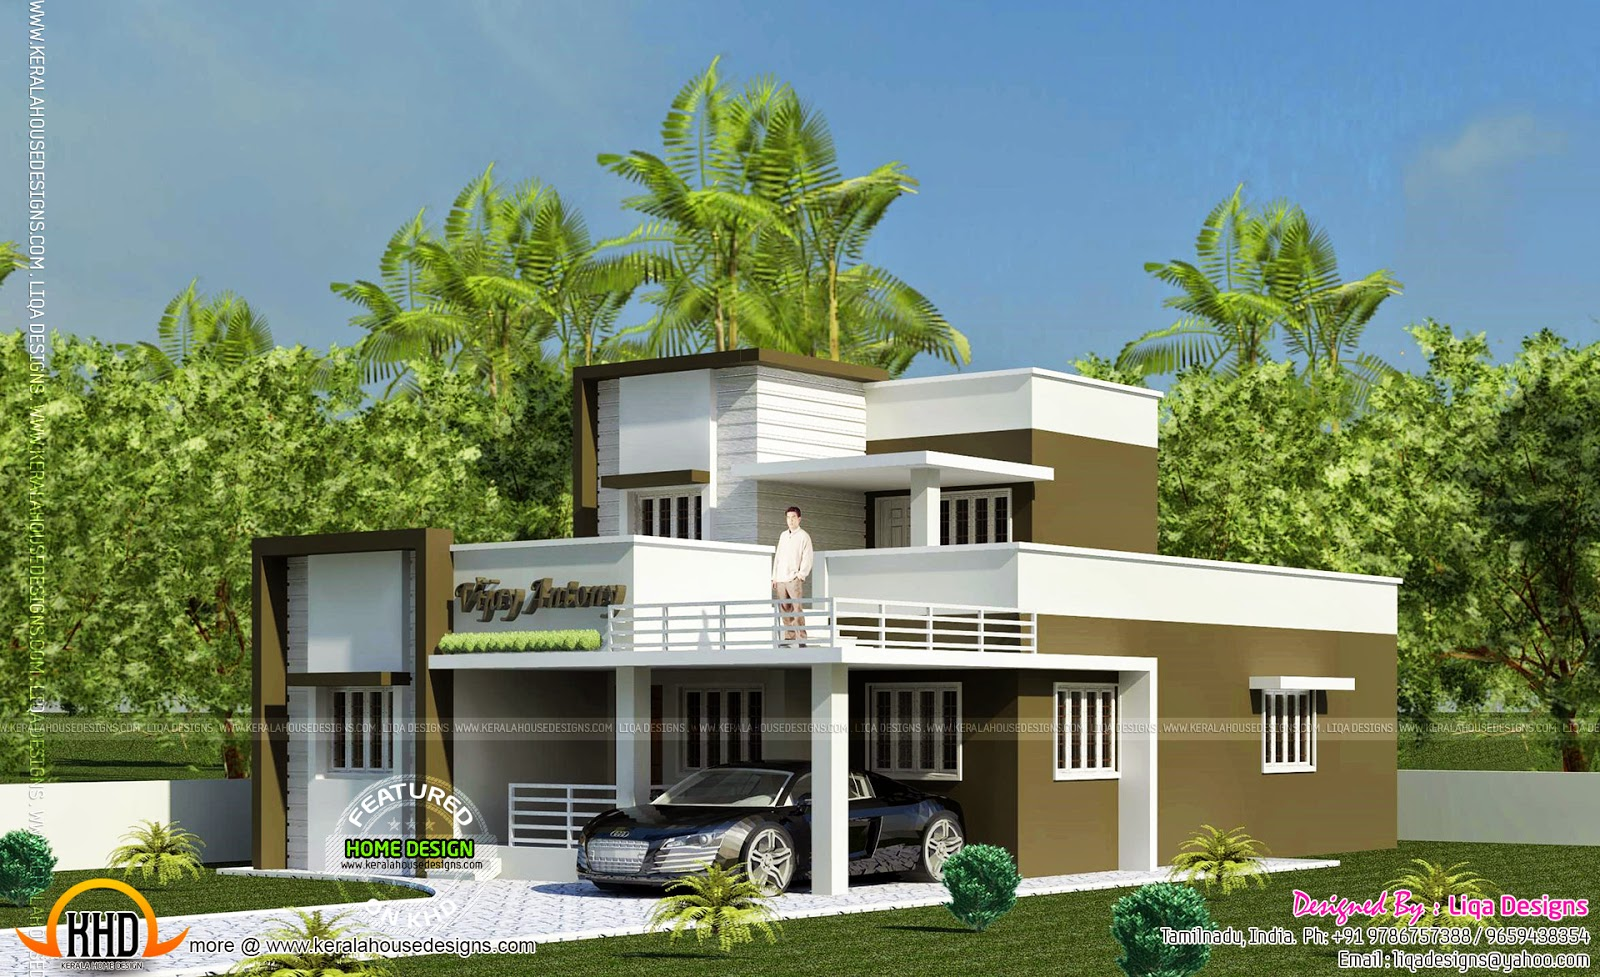 1365 sq ft 2 bedroom small house design kerala home for Home models in tamilnadu pictures